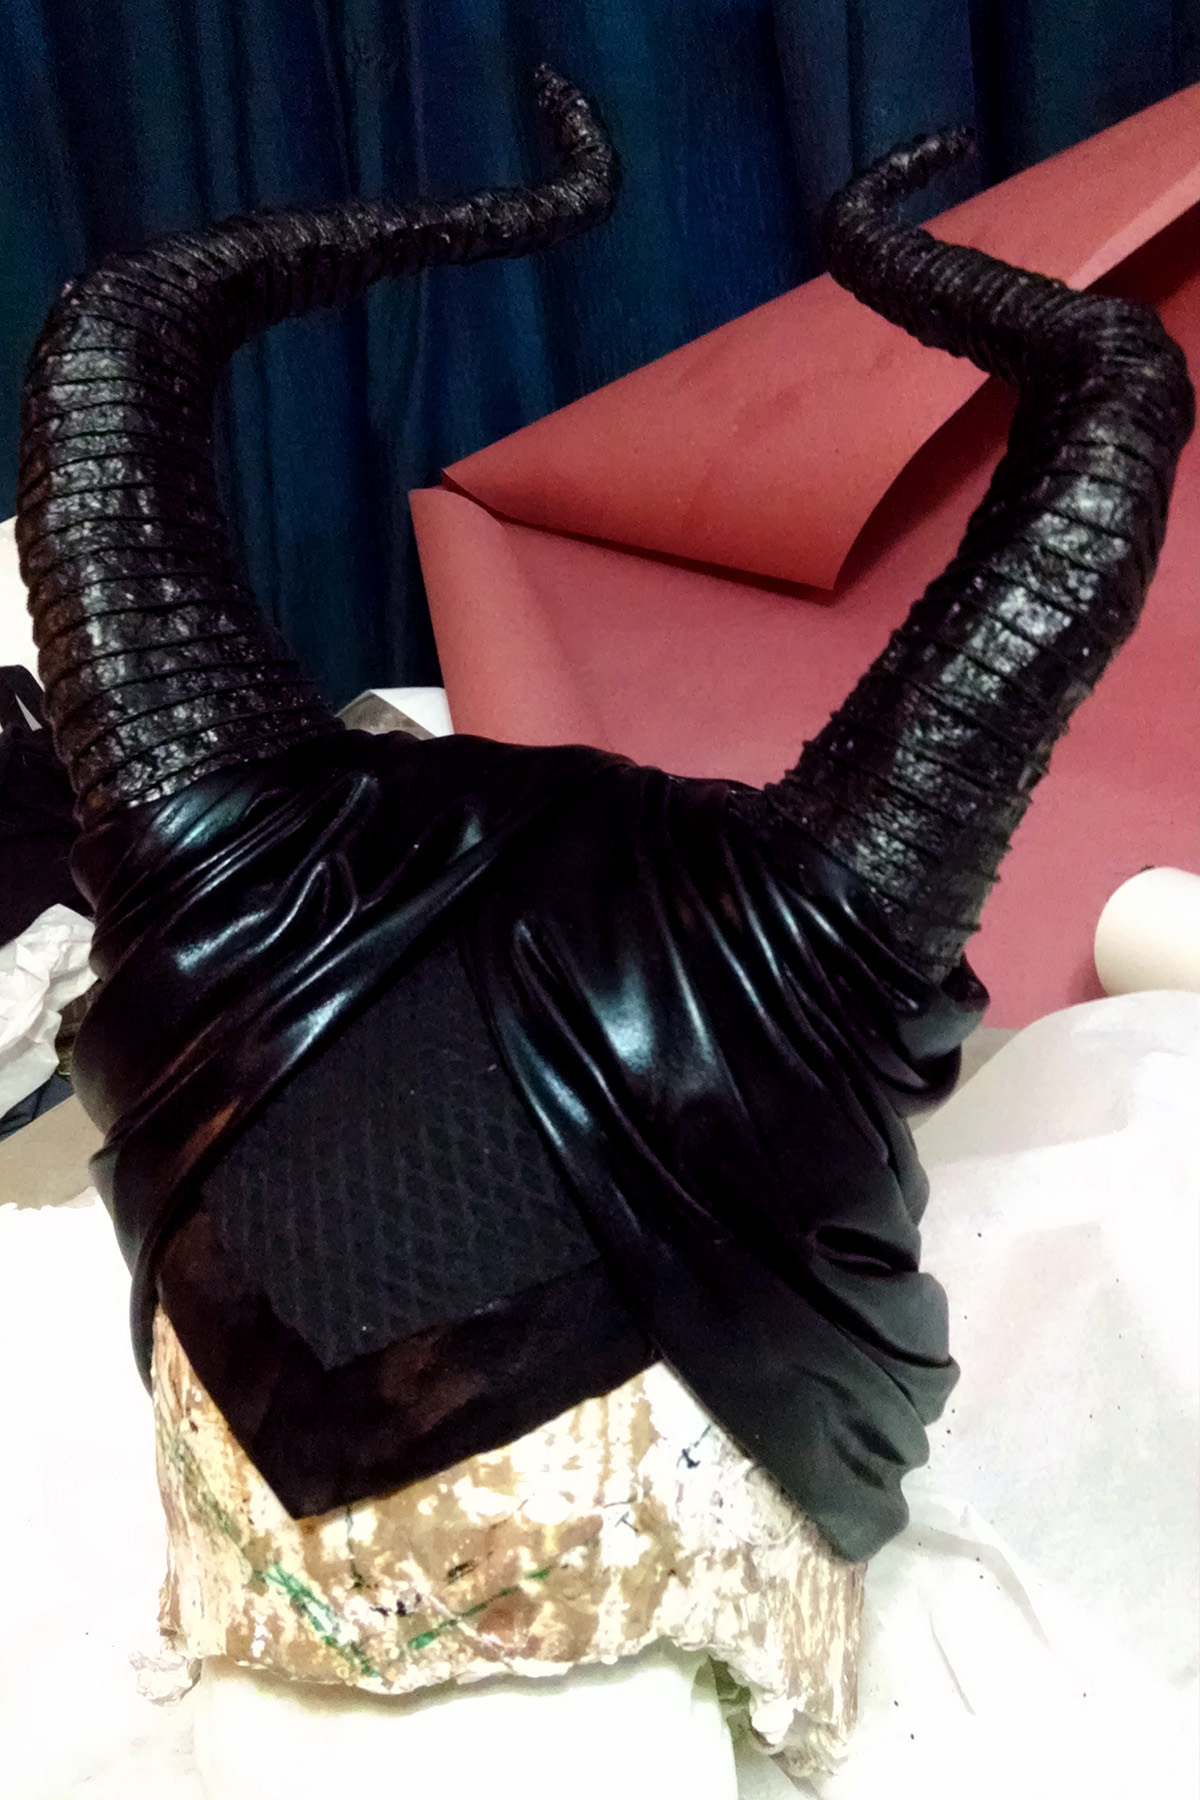 Maleficent's headpiece and horns, completed and resting on a head form.